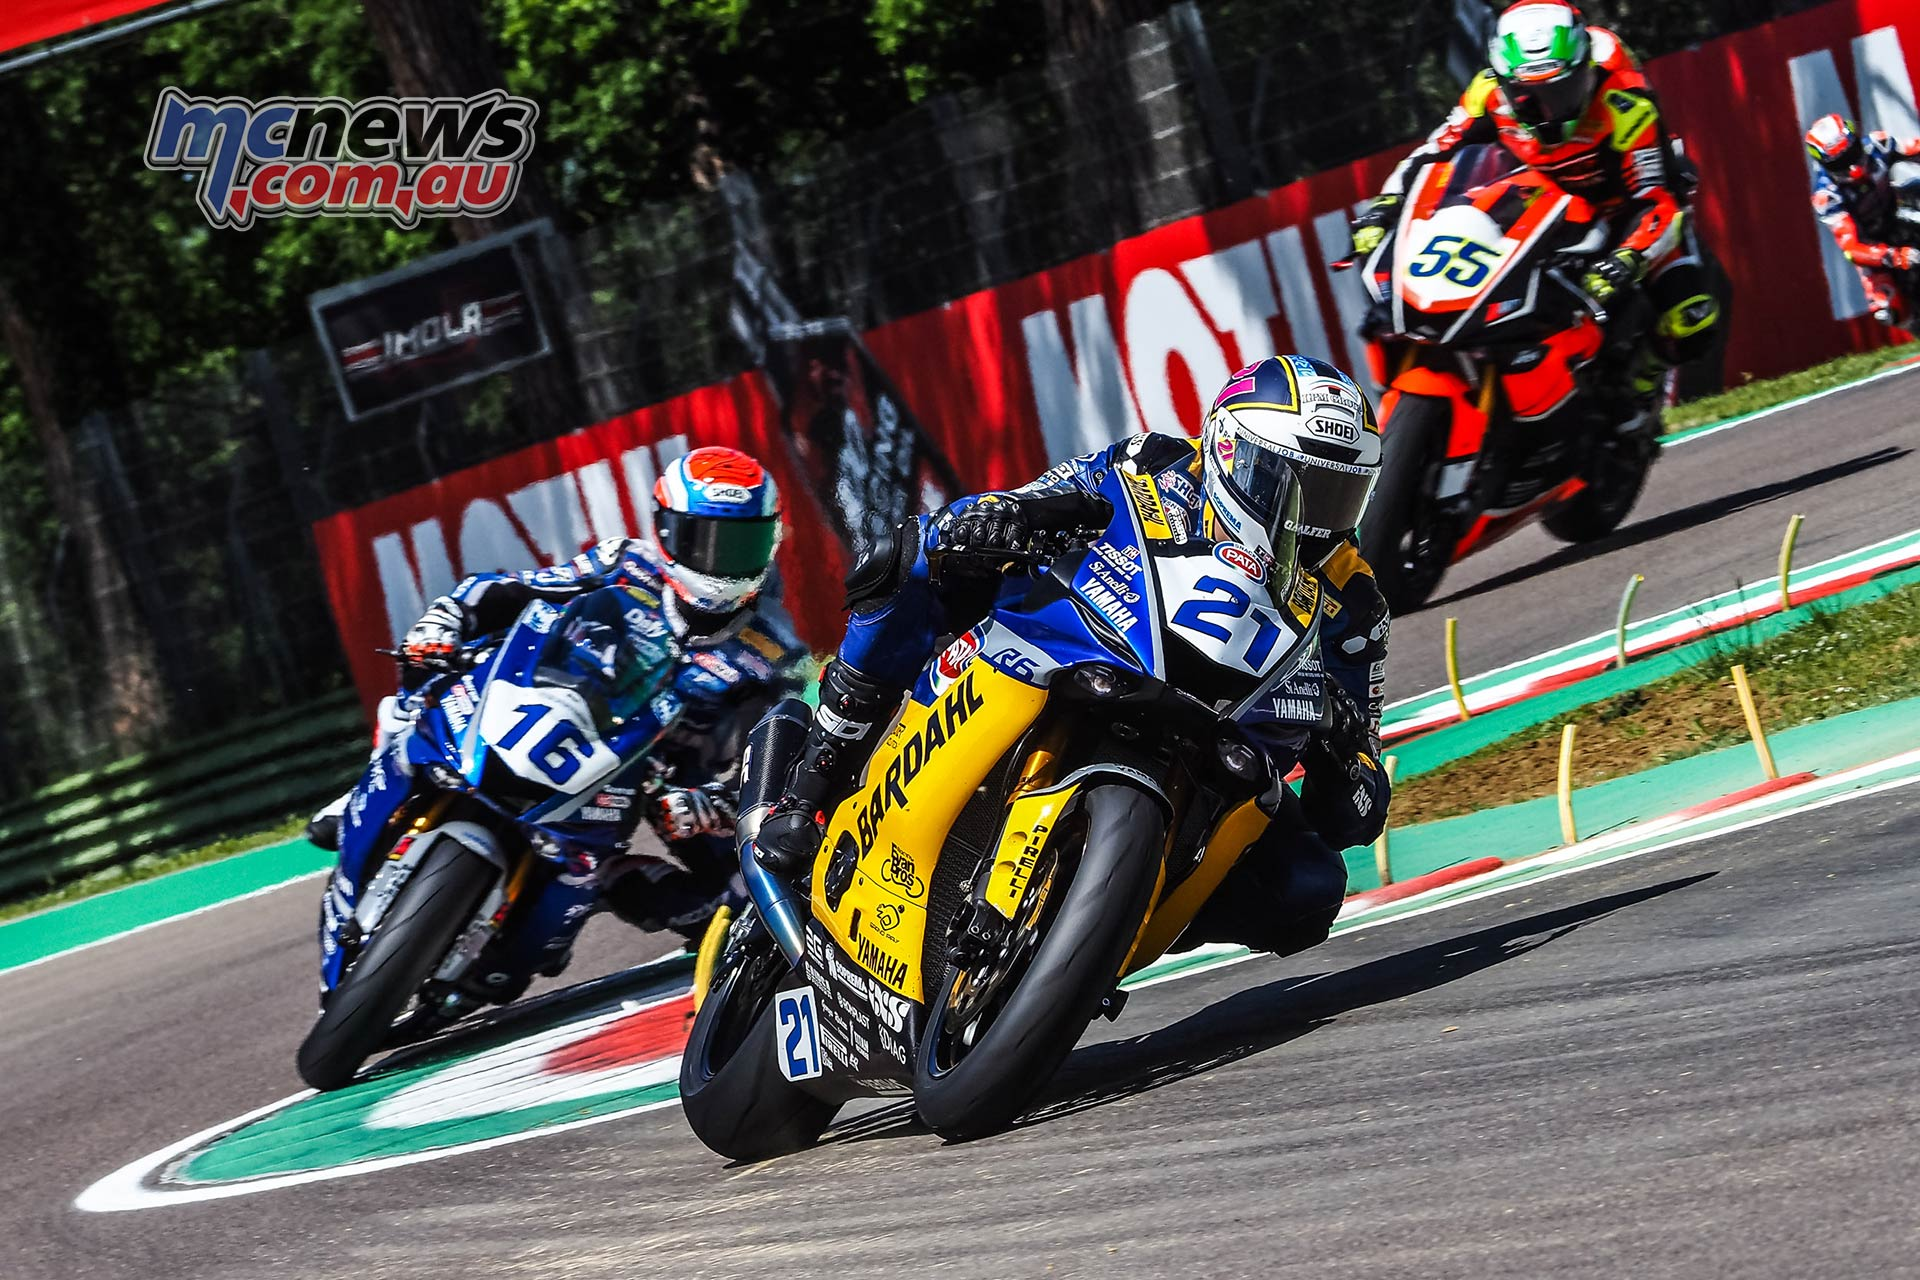 WSBK Rnd Imola Friday WorldSSP Friday Action Krummenacher